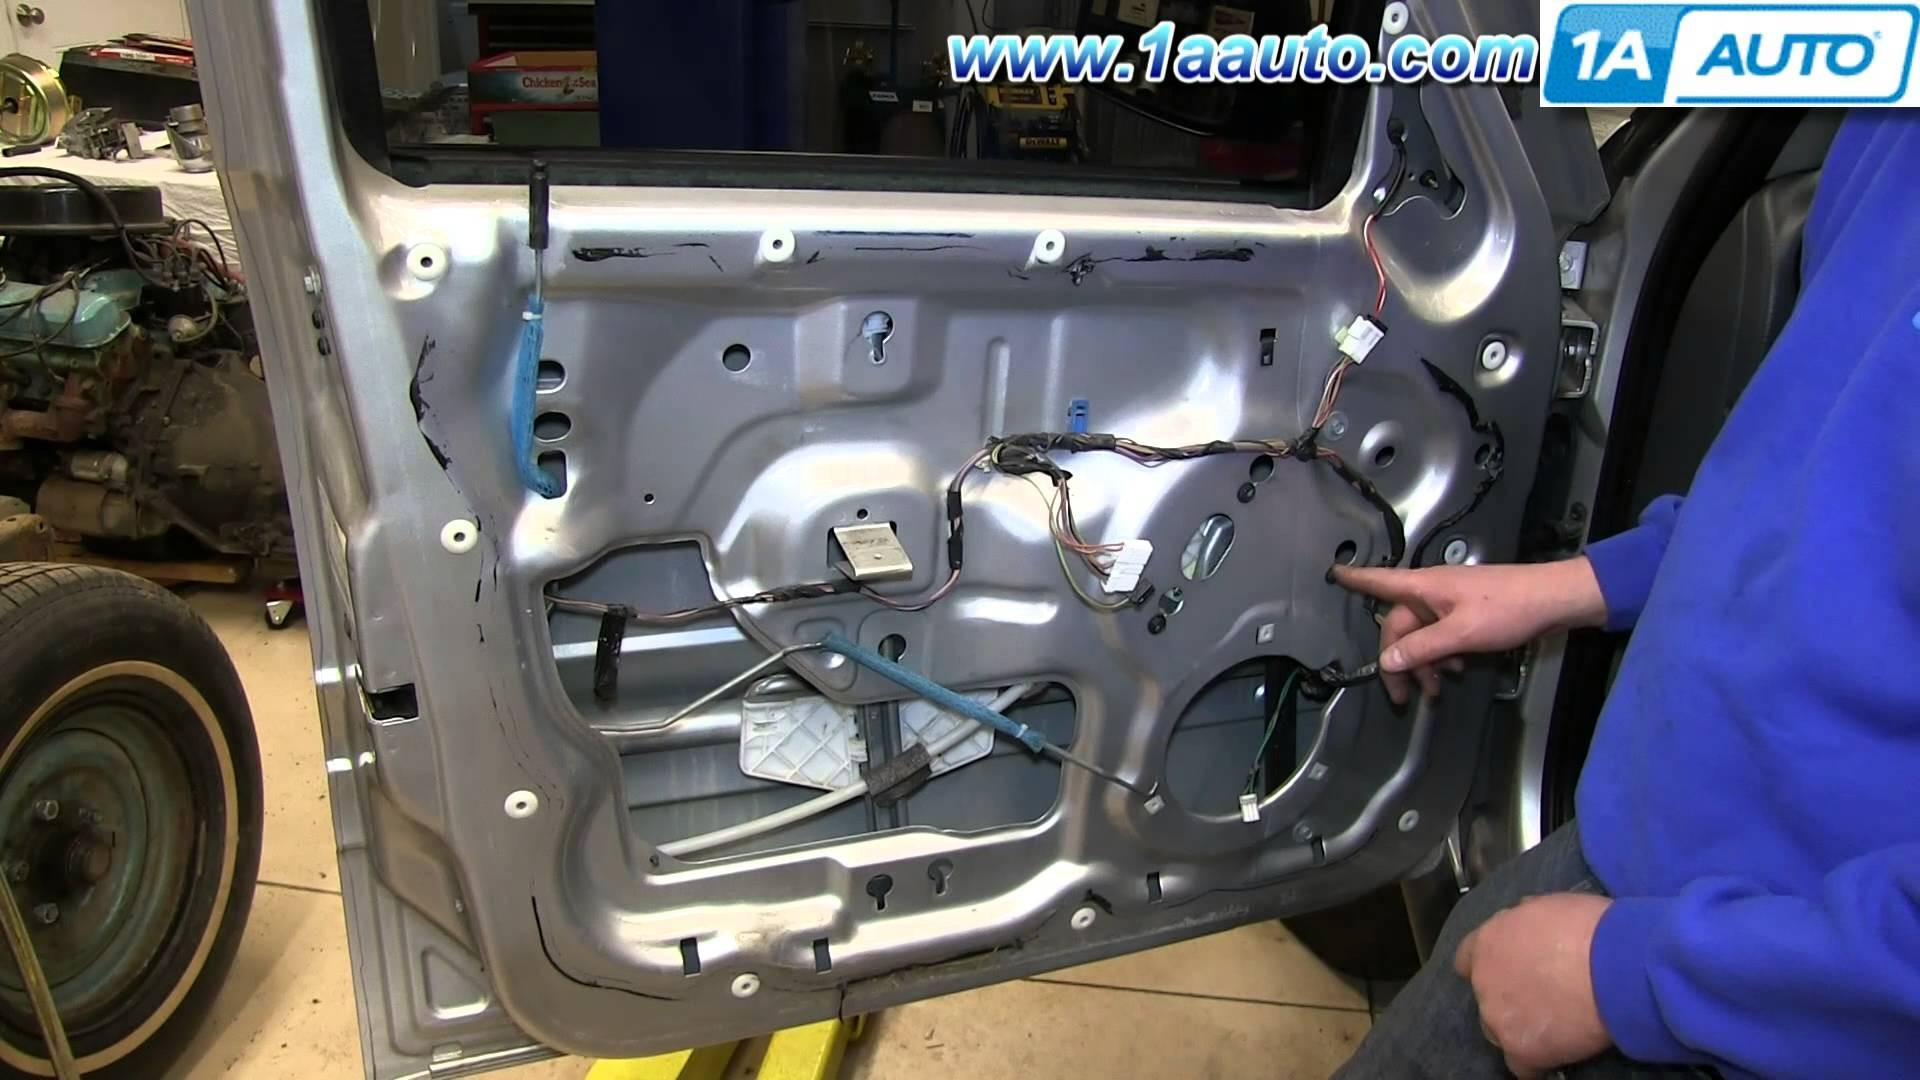 2011 Jeep Liberty Engine Diagram How To Install Replace Front Power Window Regulator 2002 07